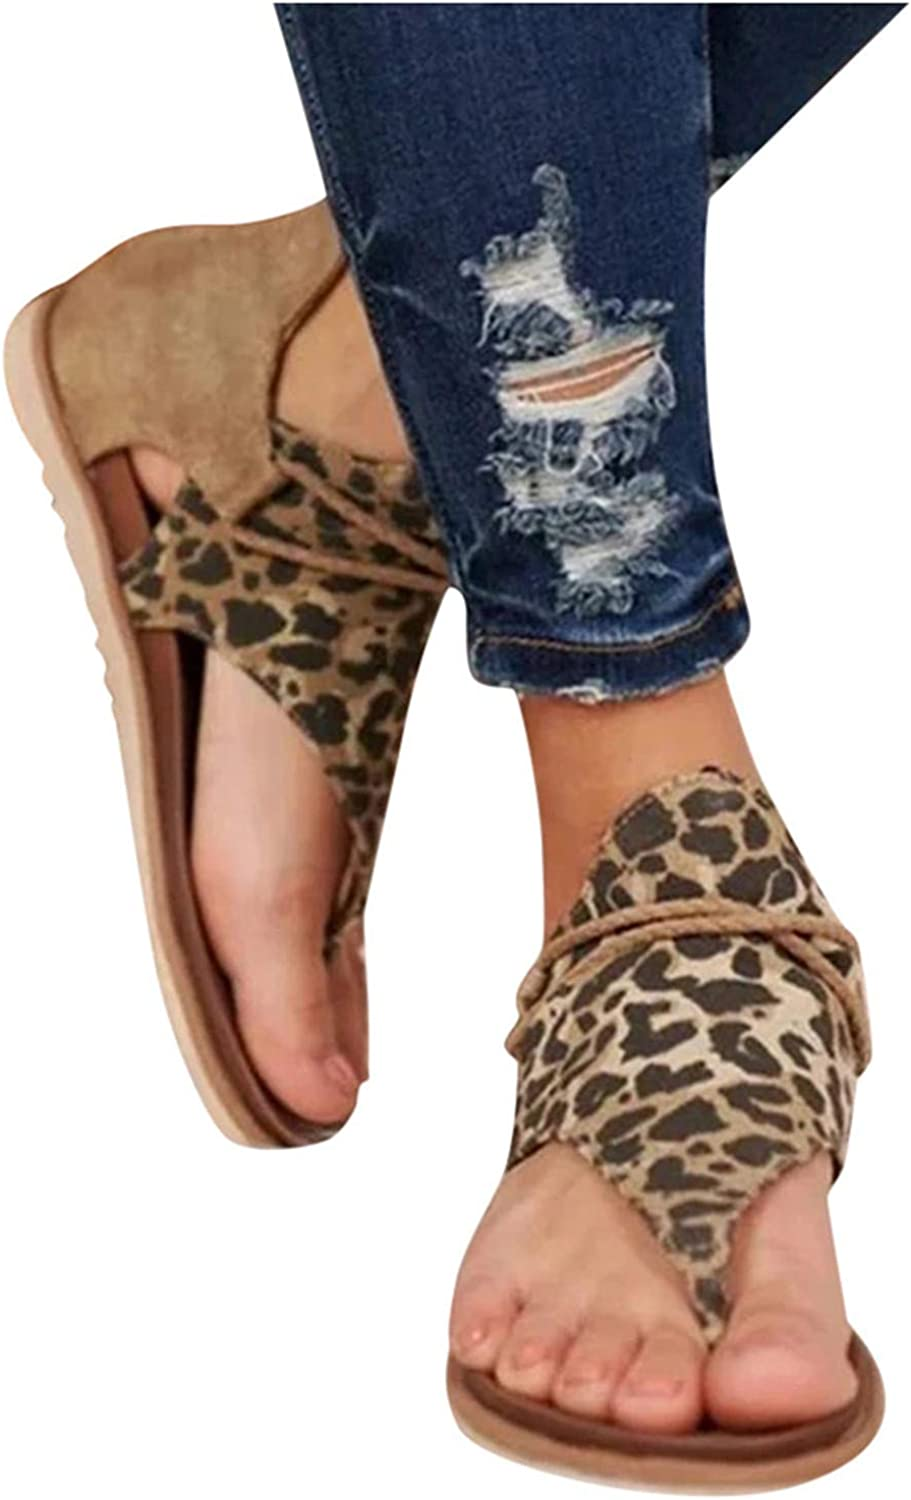 Mallocat Sandals for Women Wedge New arrival Flat 2021 Leopard Prin Year-end gift Fashion